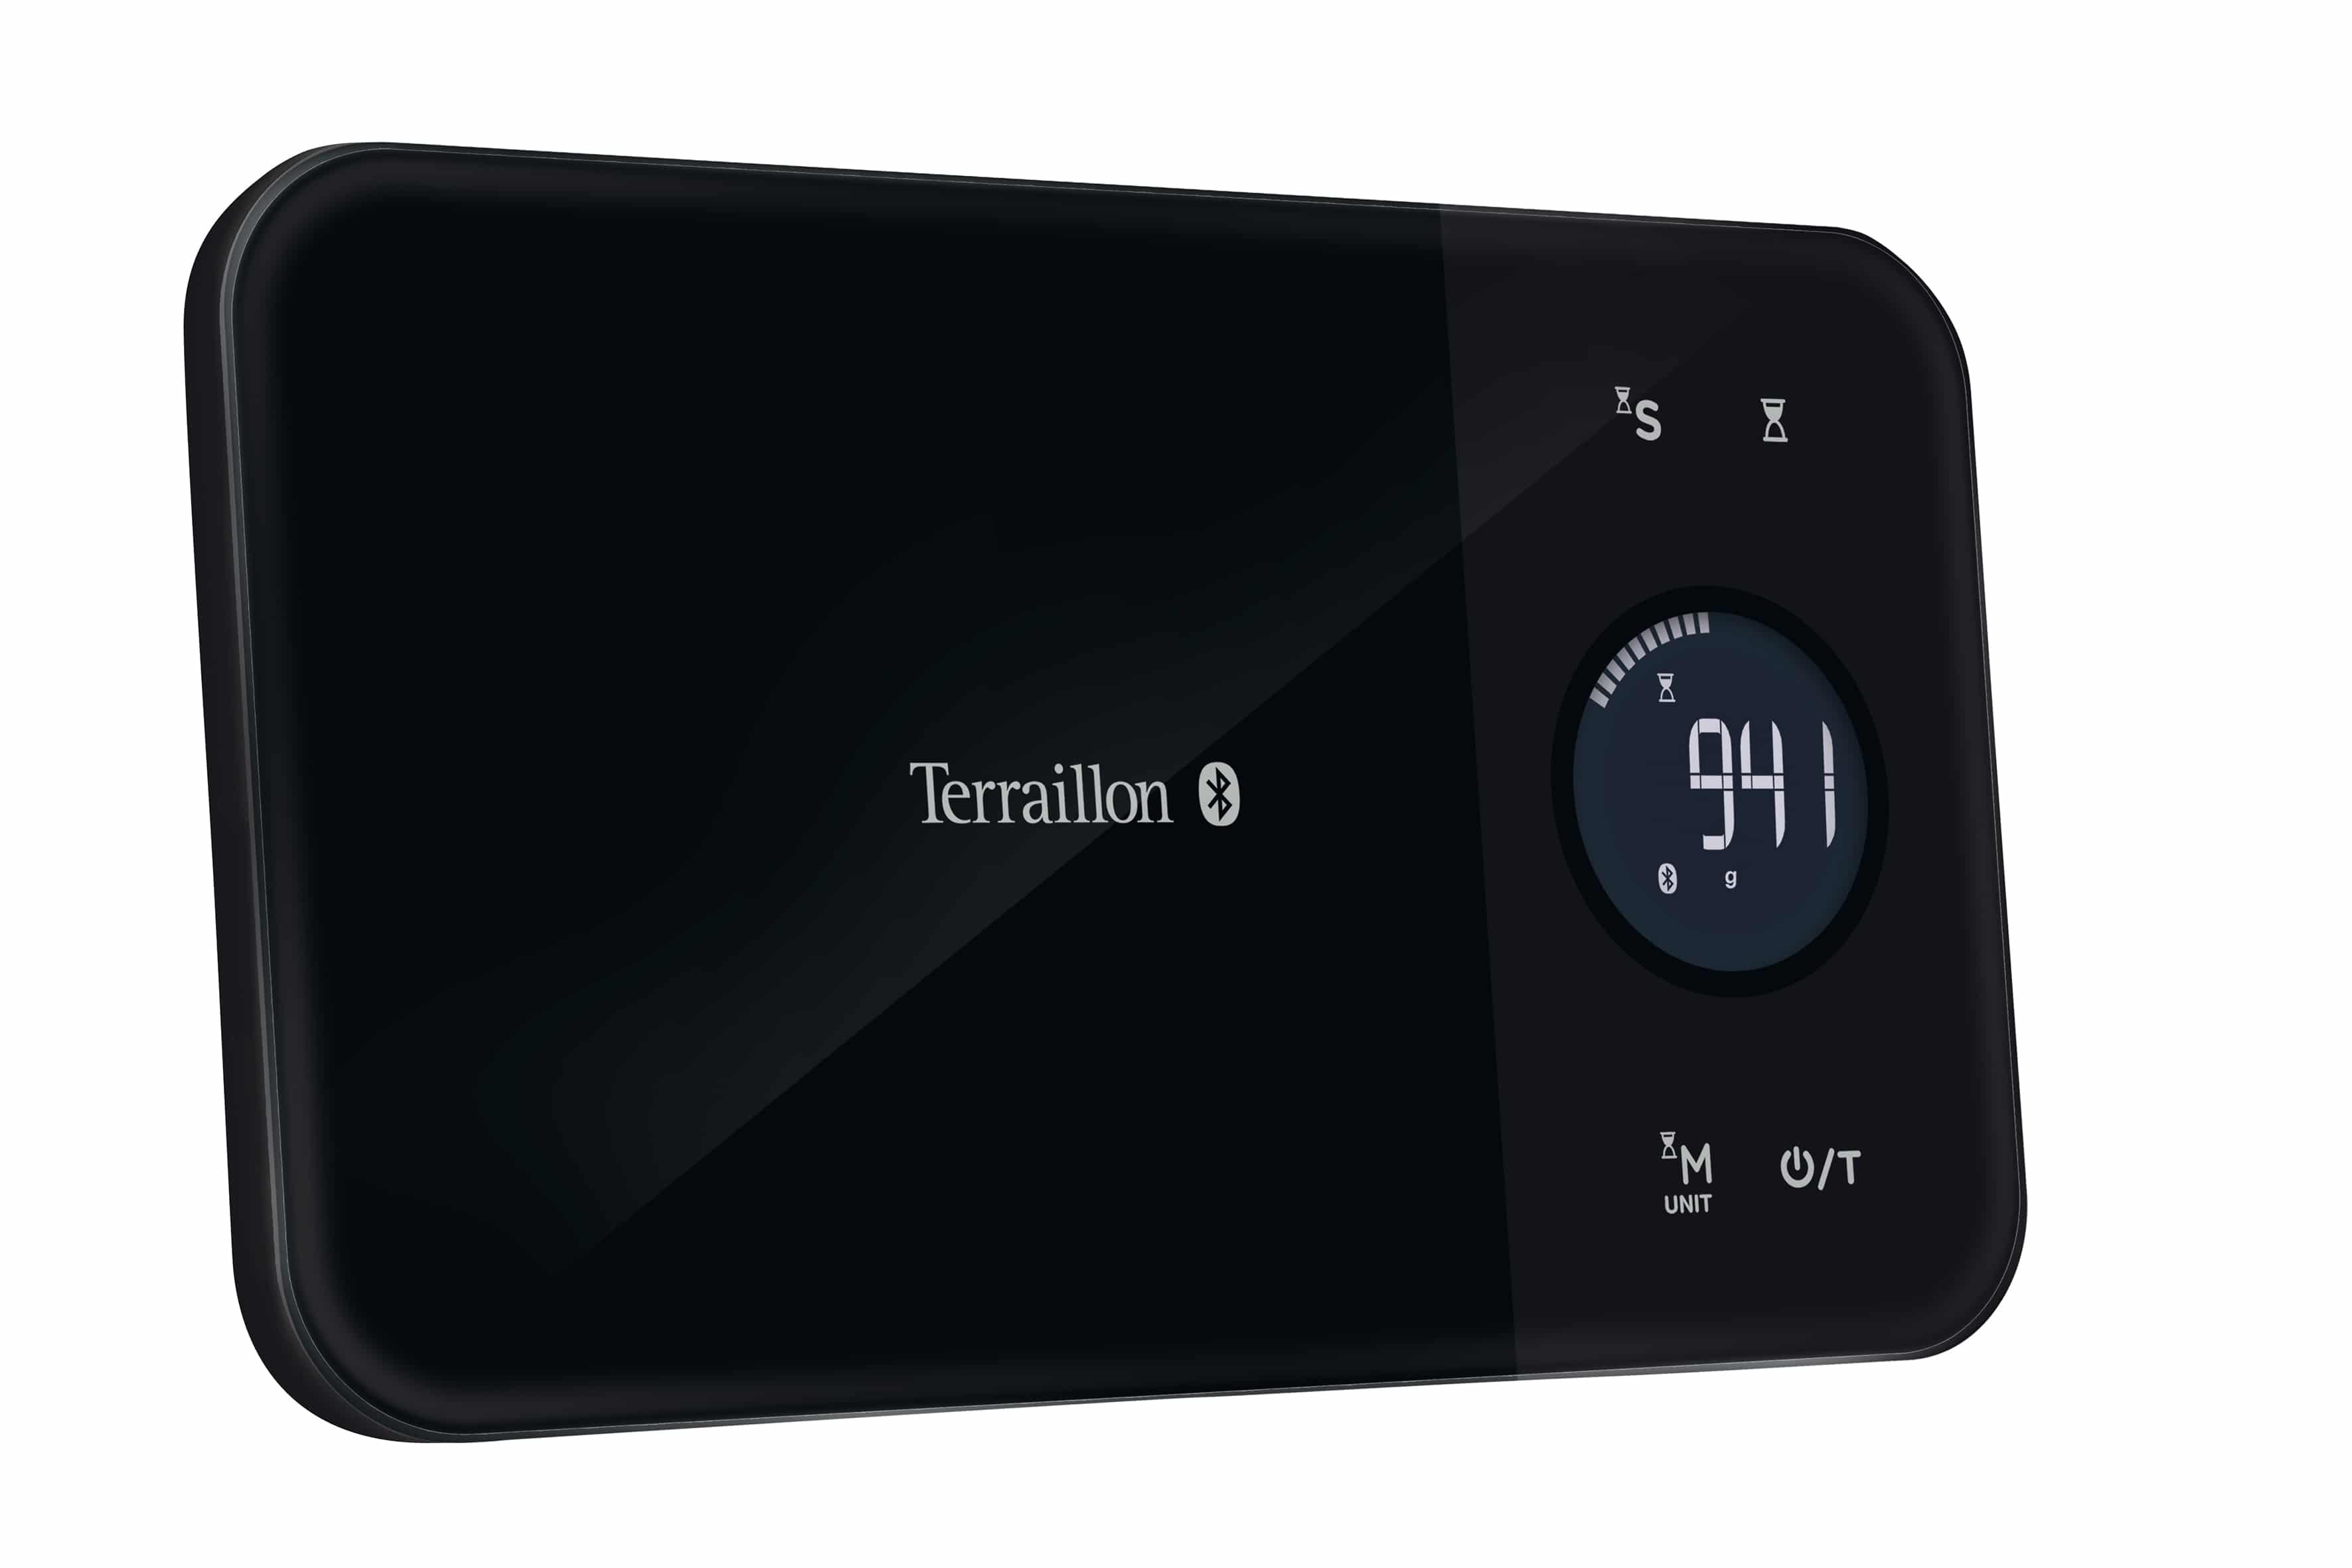 terraillon showcases its new range of wellbeing devices 3 - Terraillon showcases its new range of wellbeing devices